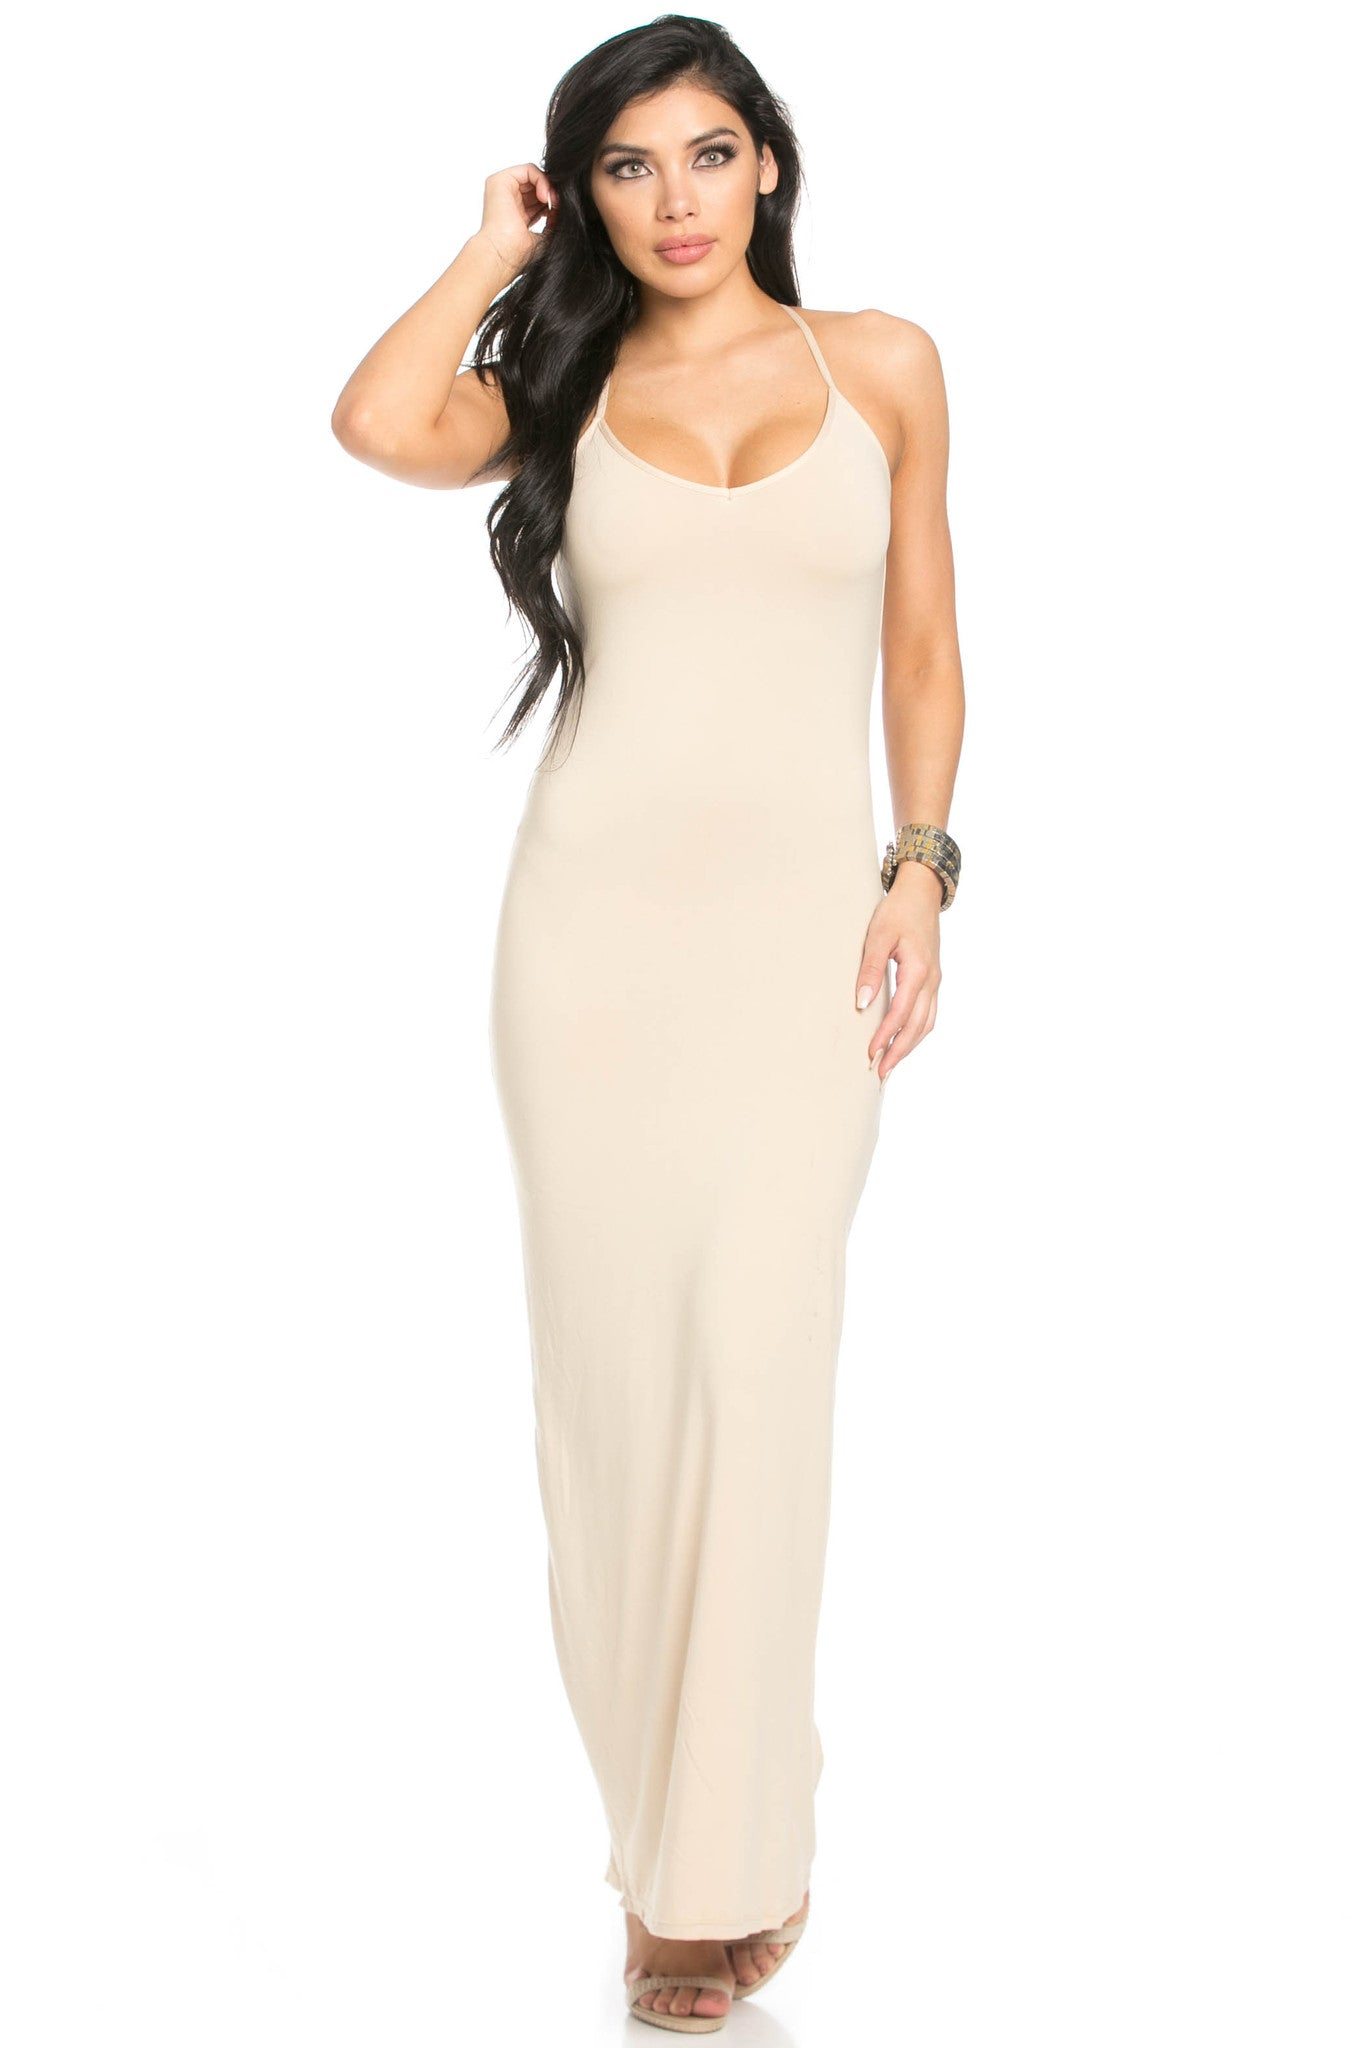 Micro Suede Khaki Maxi Dress - Dresses - My Yuccie - 4